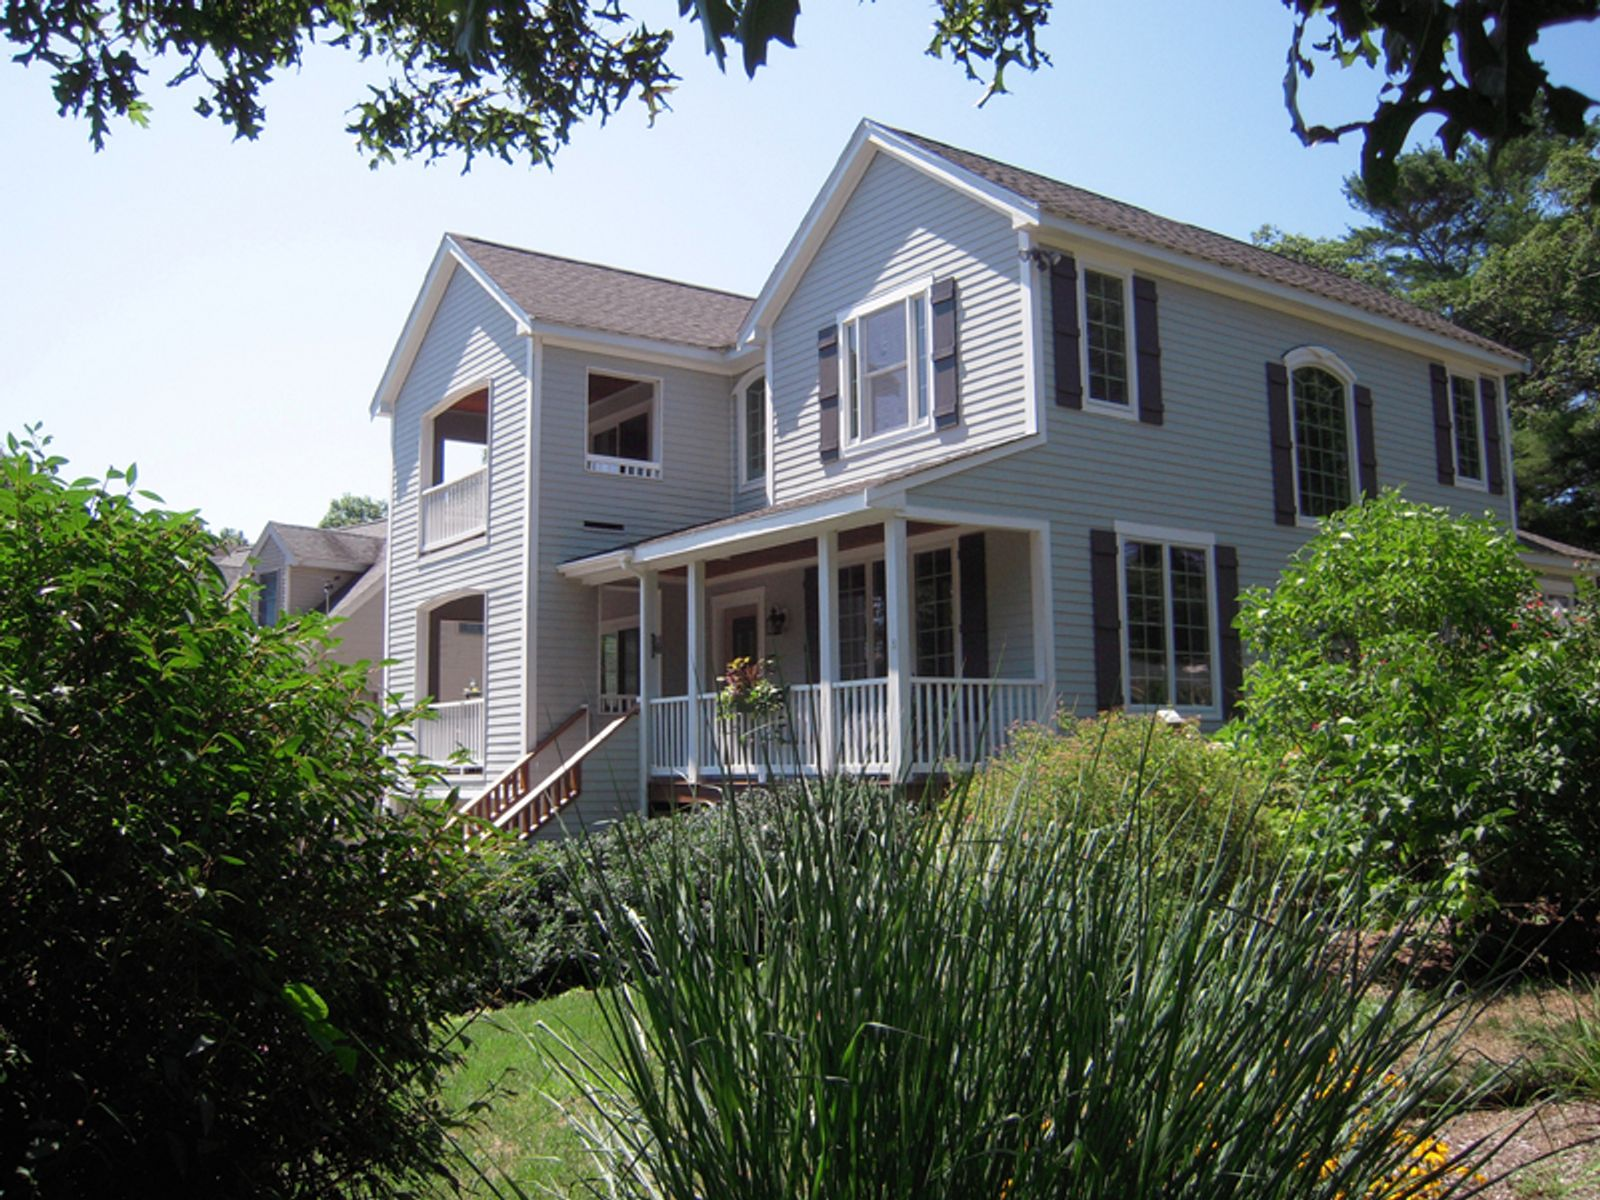 Water View with Beach Rights, East Falmouth MA Single Family Home - Cape Cod Real Estate